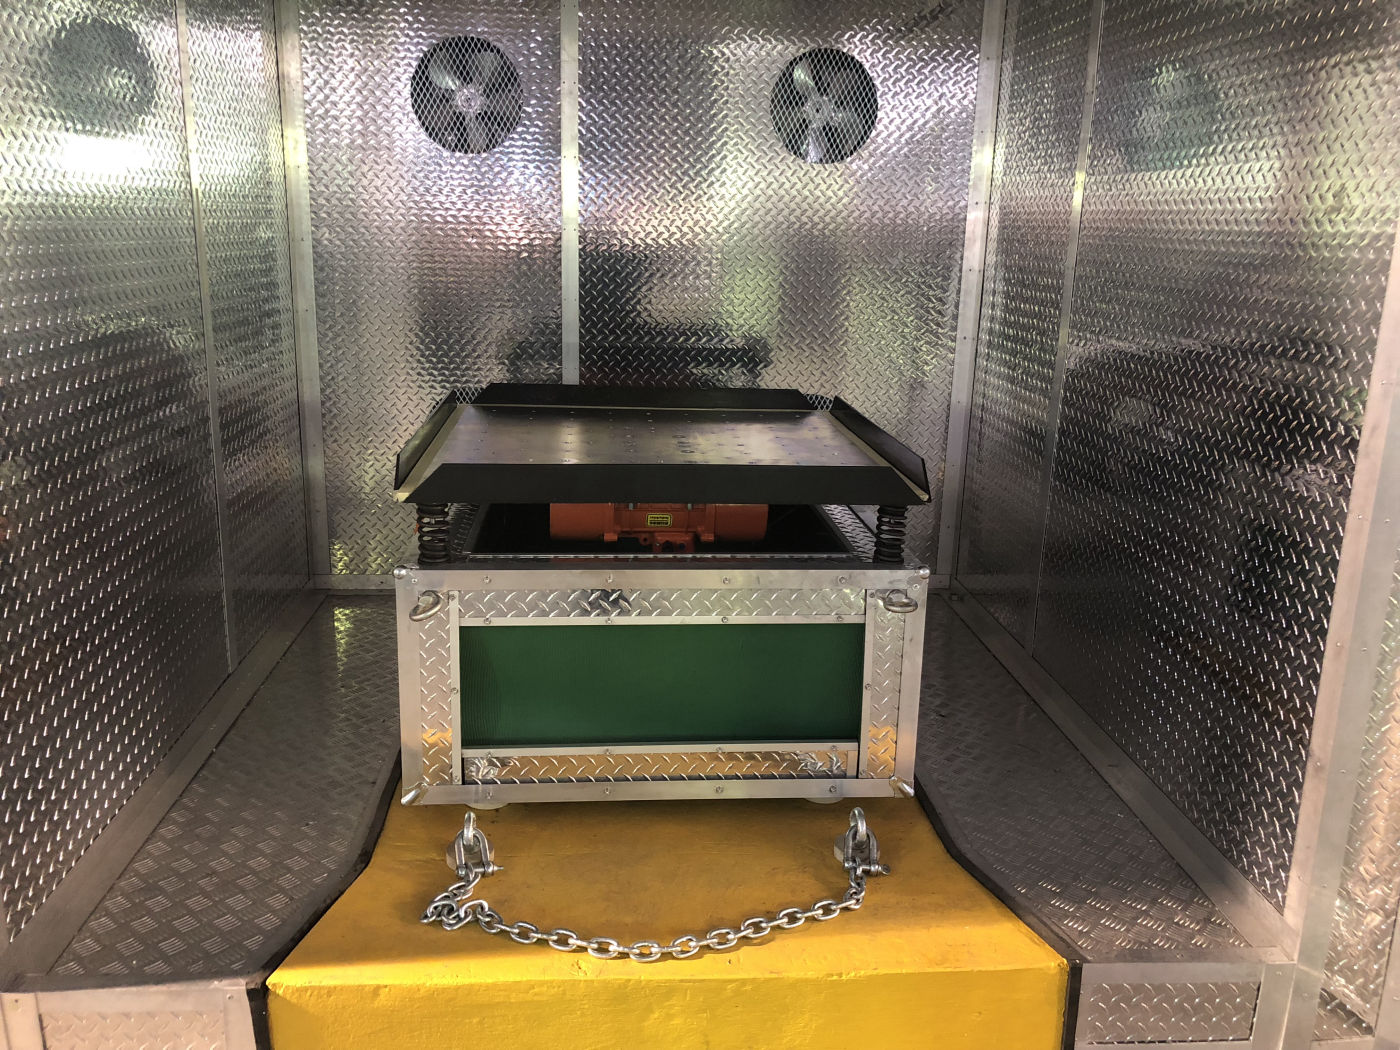 Vibration Table within Walk-In Temperature Controlled Chamber